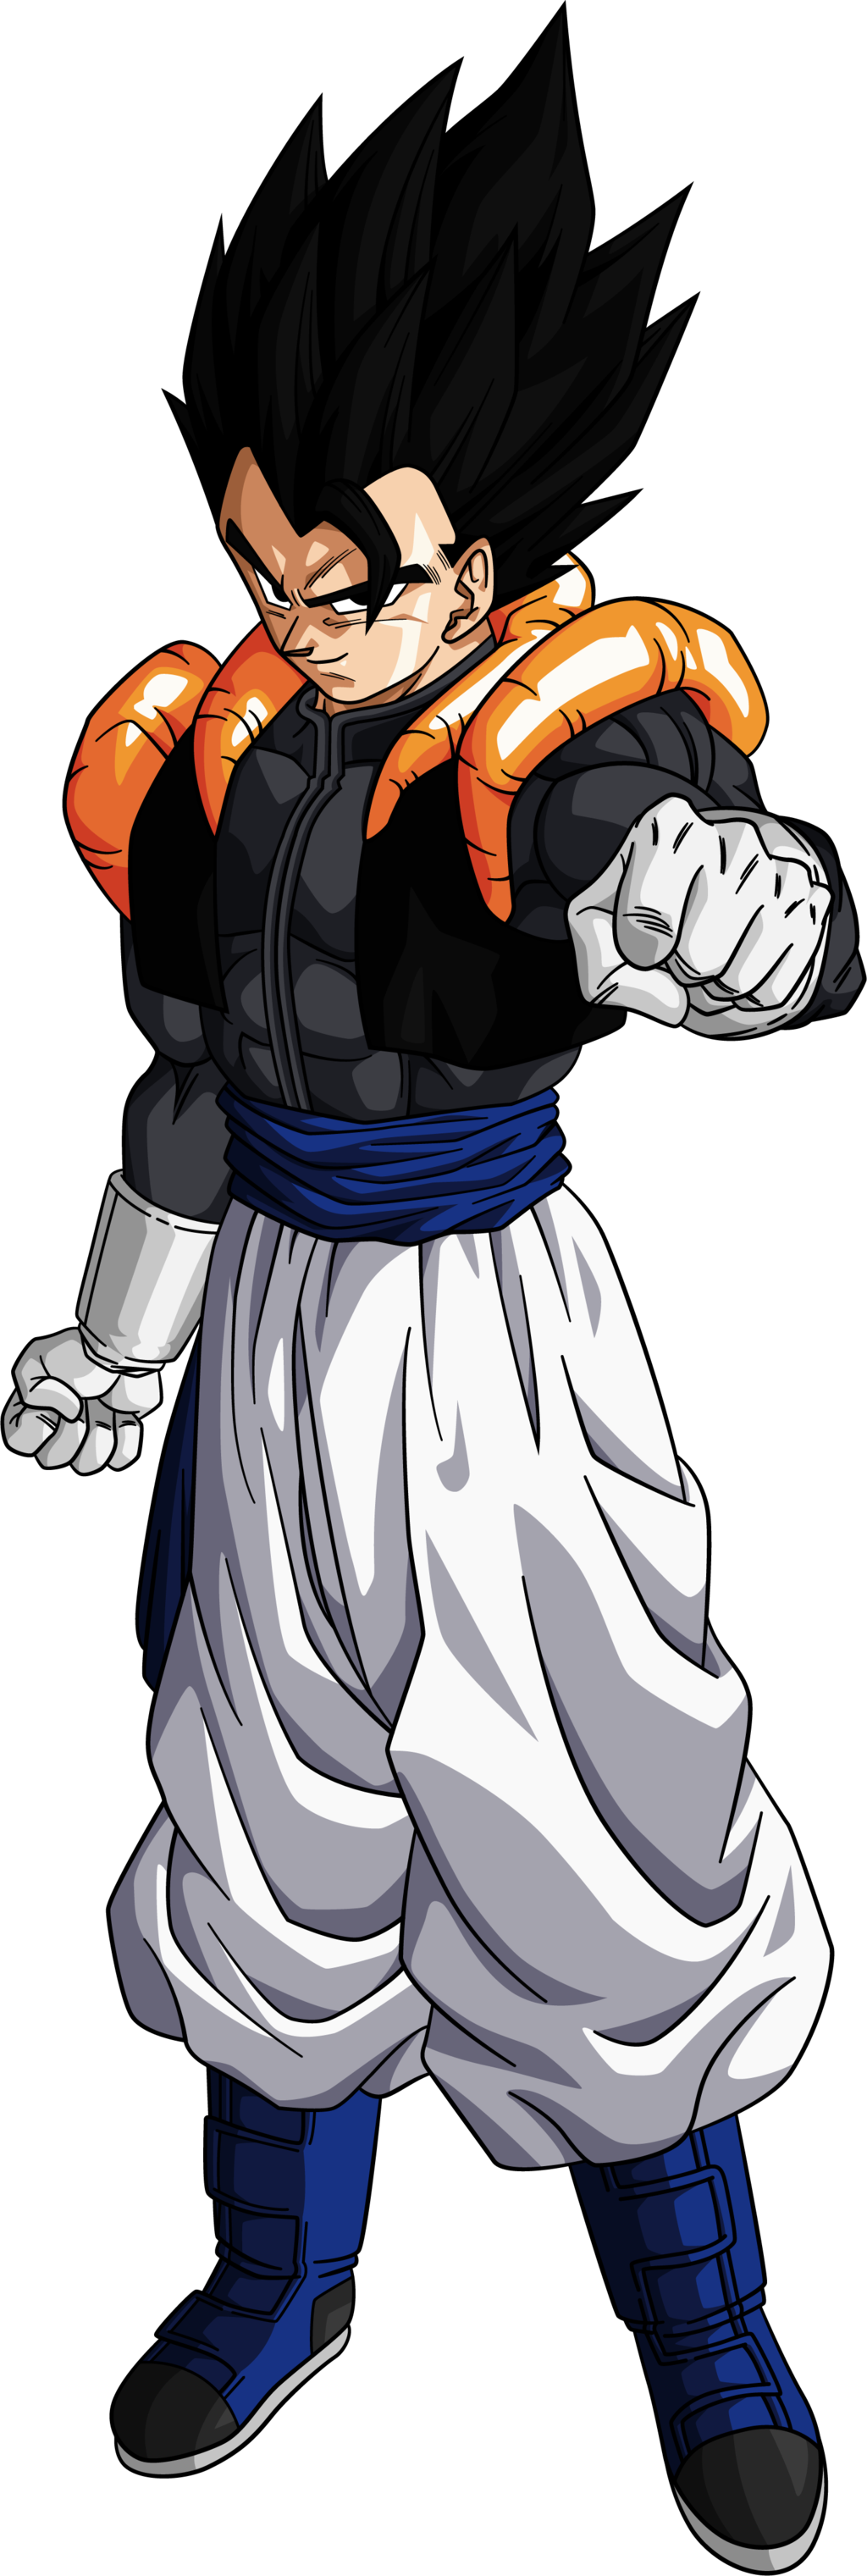 Gogeta transparent base form. Anta expocoaching co